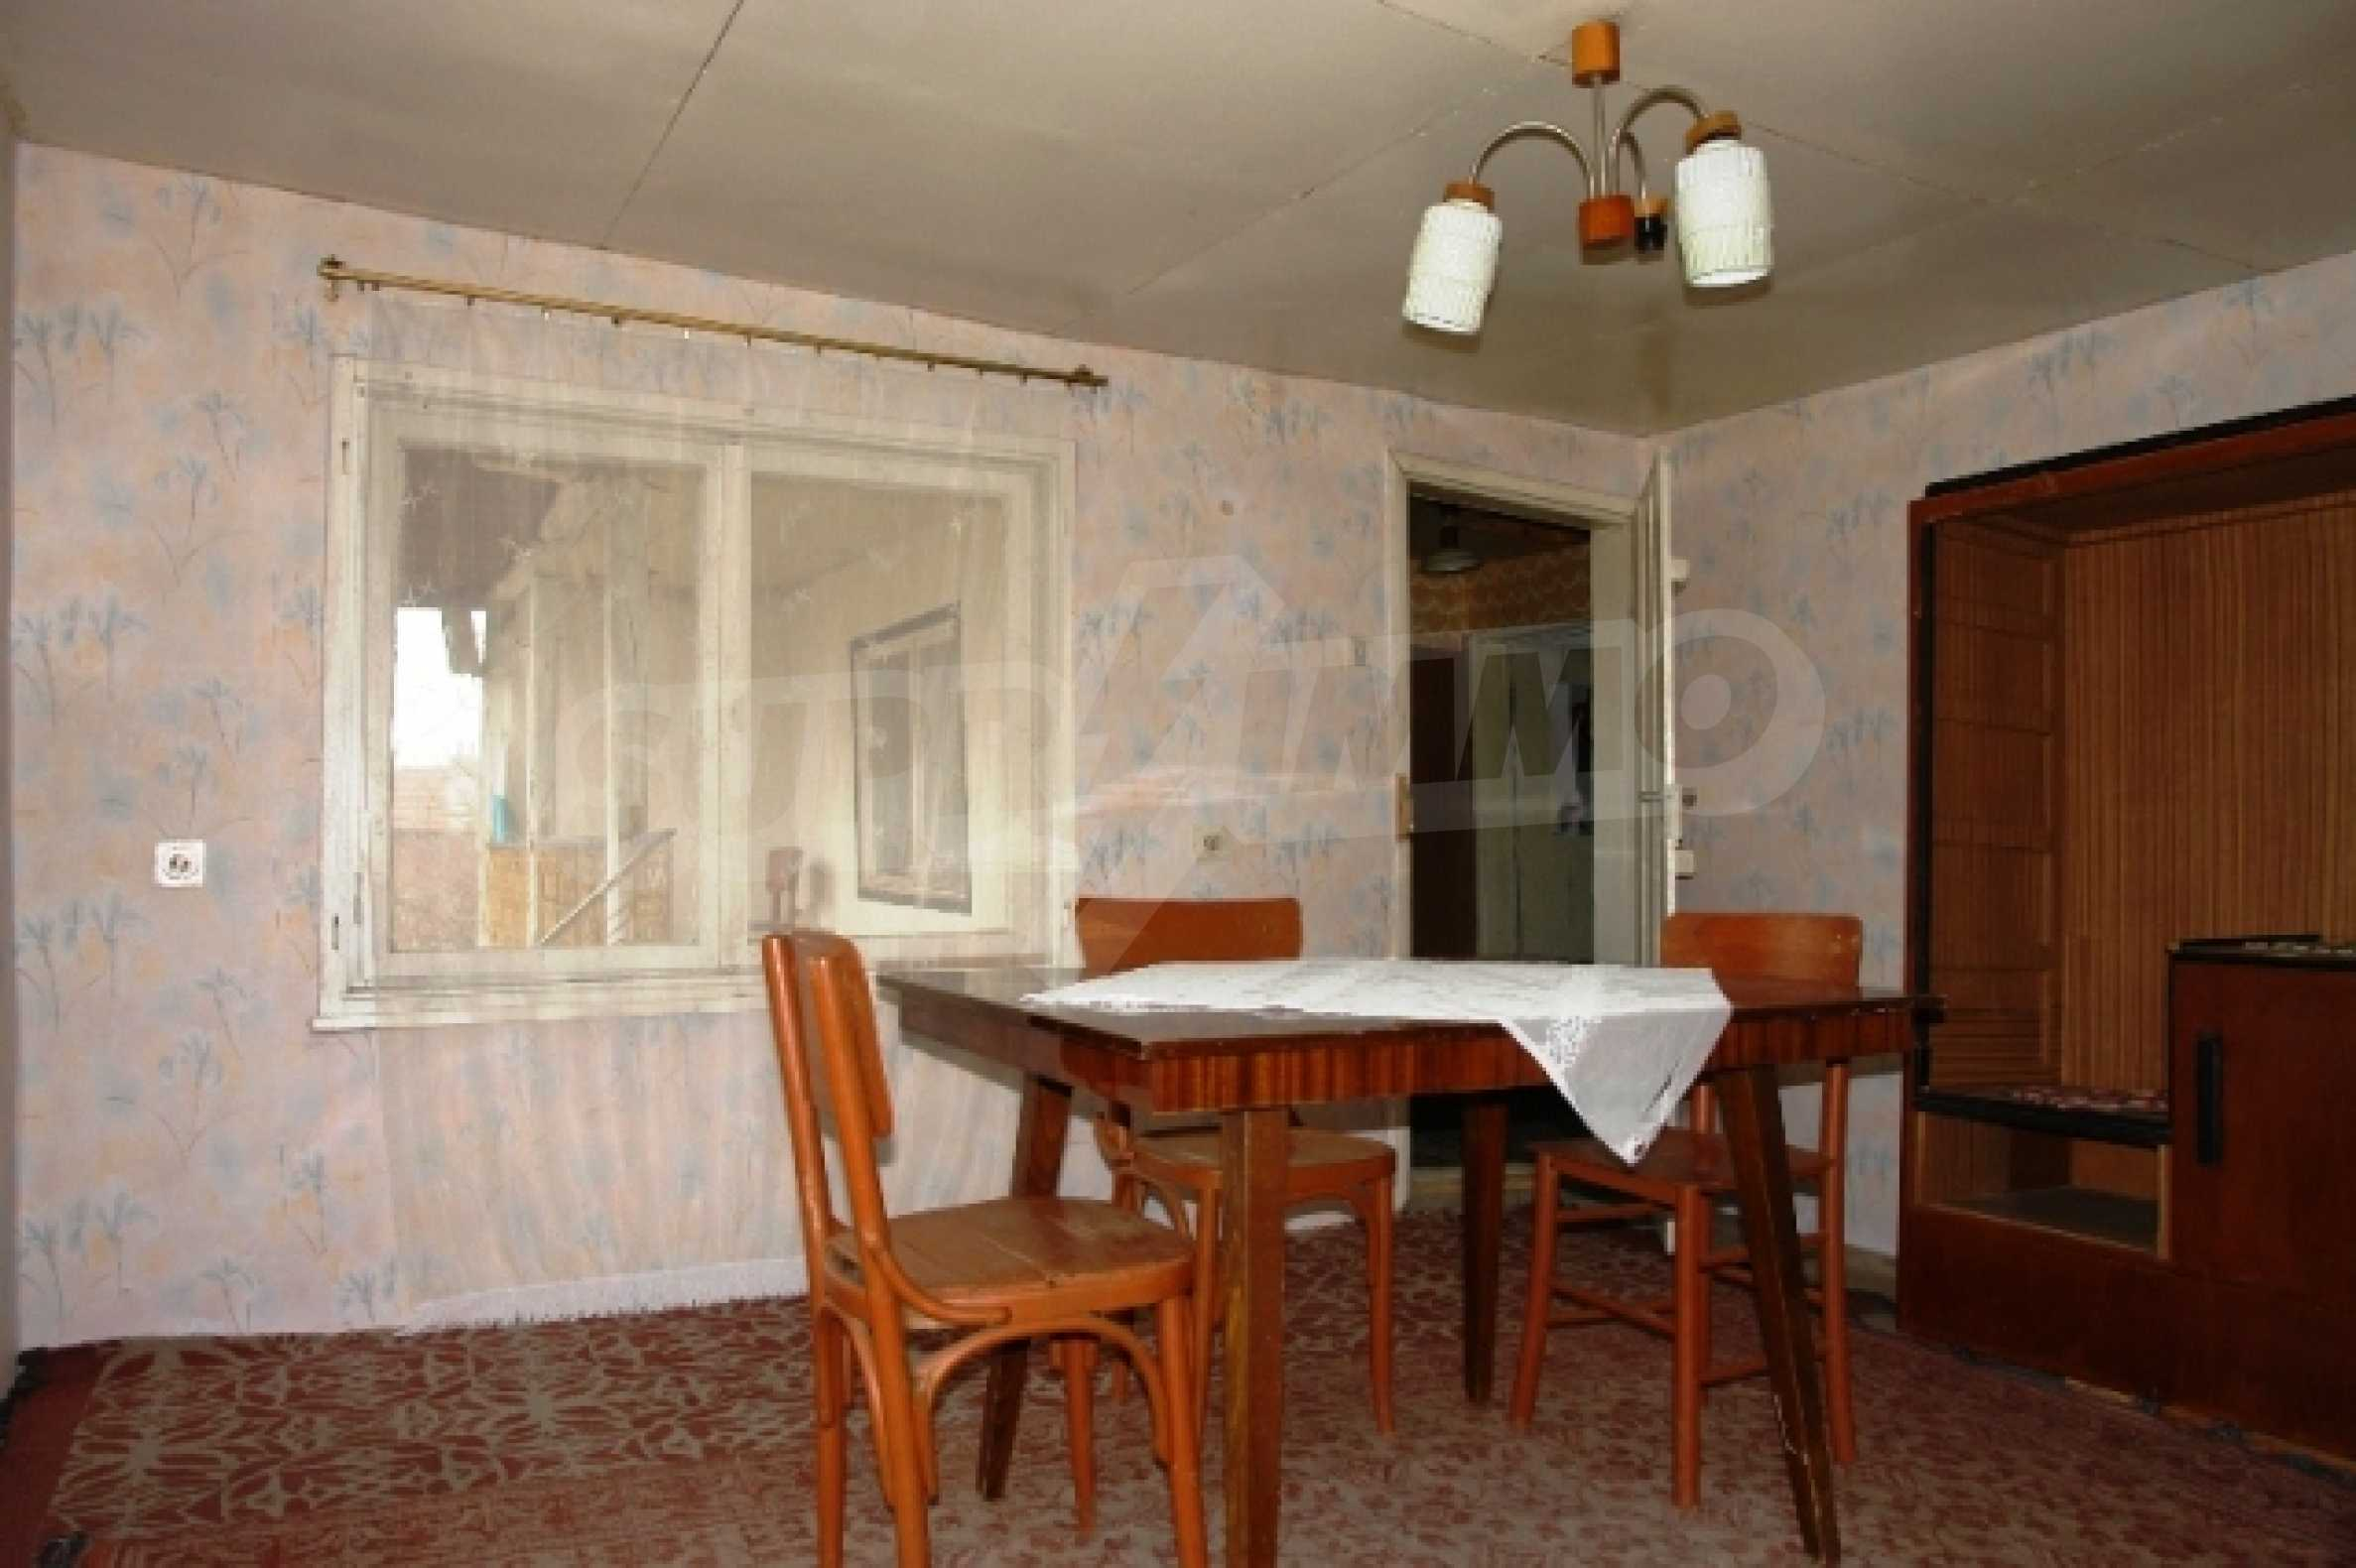 Two-storey 3-Bedroom house in Mogilino village, Ruse district 15